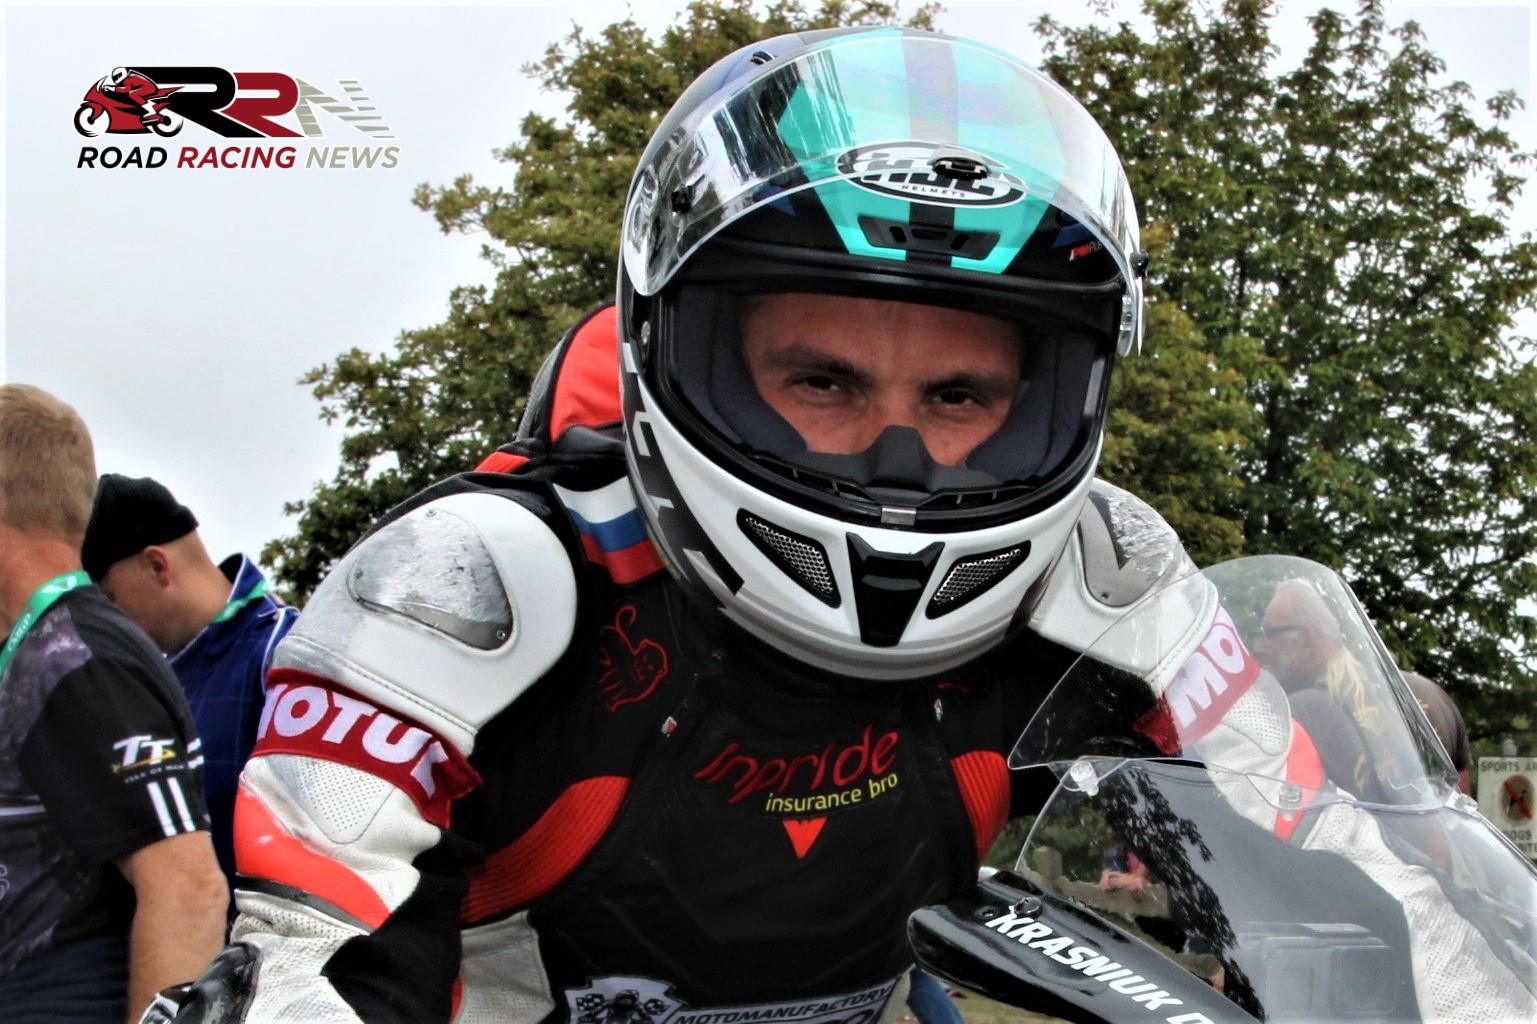 KDM Hire Cookstown 100 Latest: First Russian Orritor Circuit Exponent